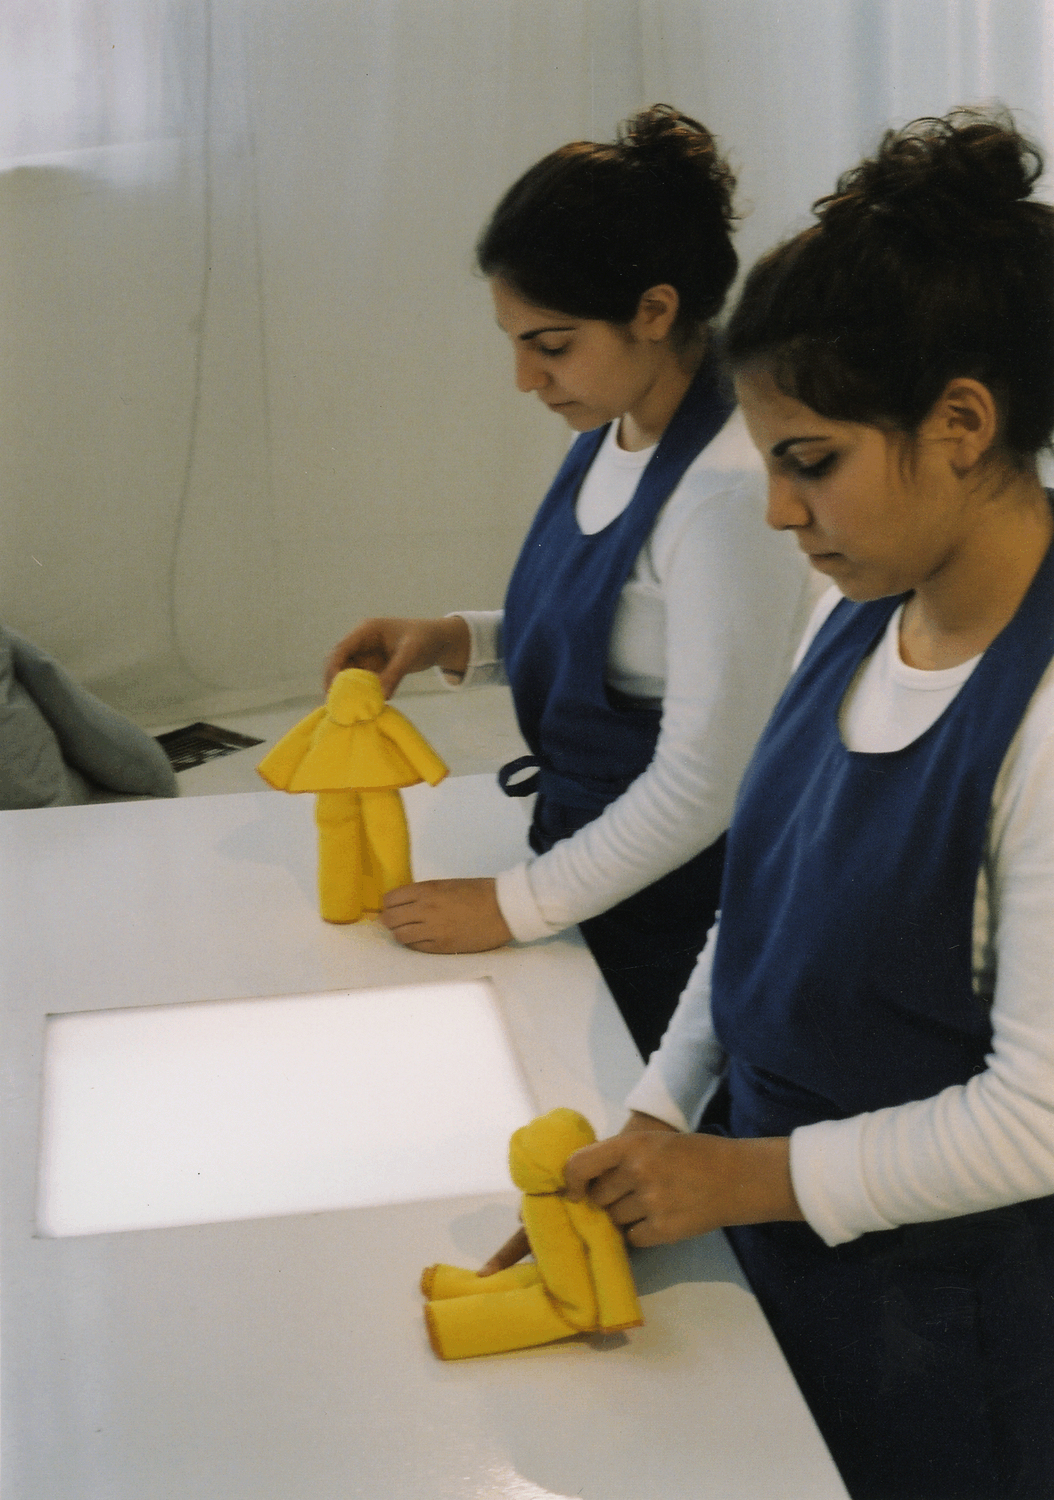 Twin girls in aprons make dolls out of yellow dusters from the site-specific show Finders Keepers